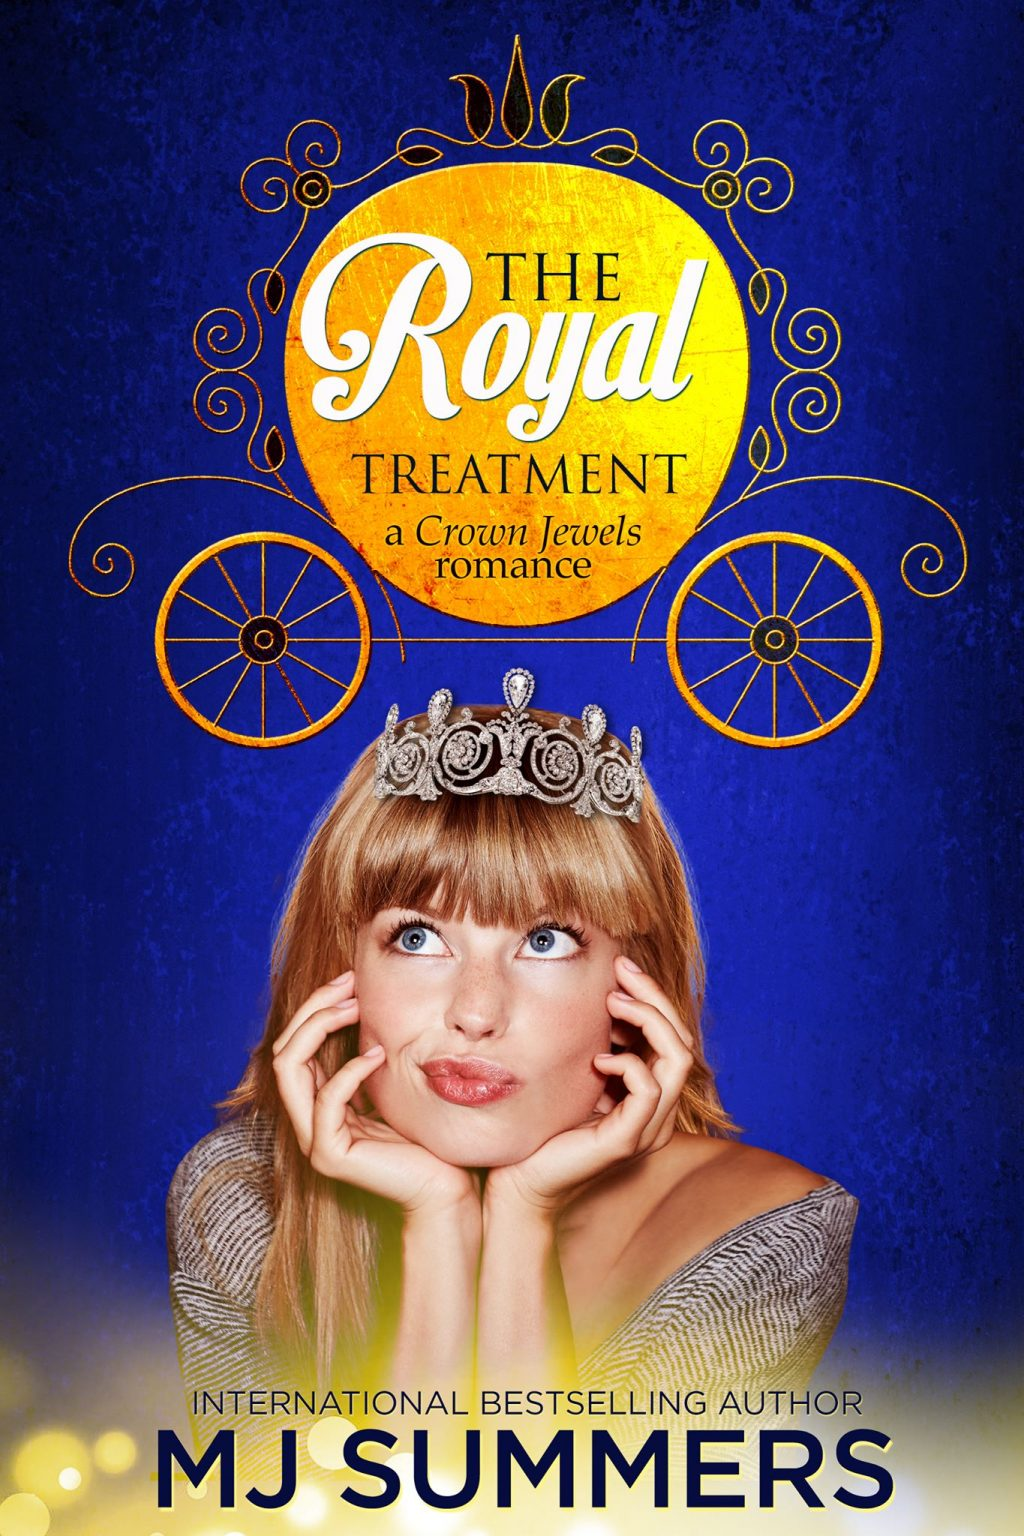 The Royal Treatment (A Crown Jewels Romance #1) by MJ Summers